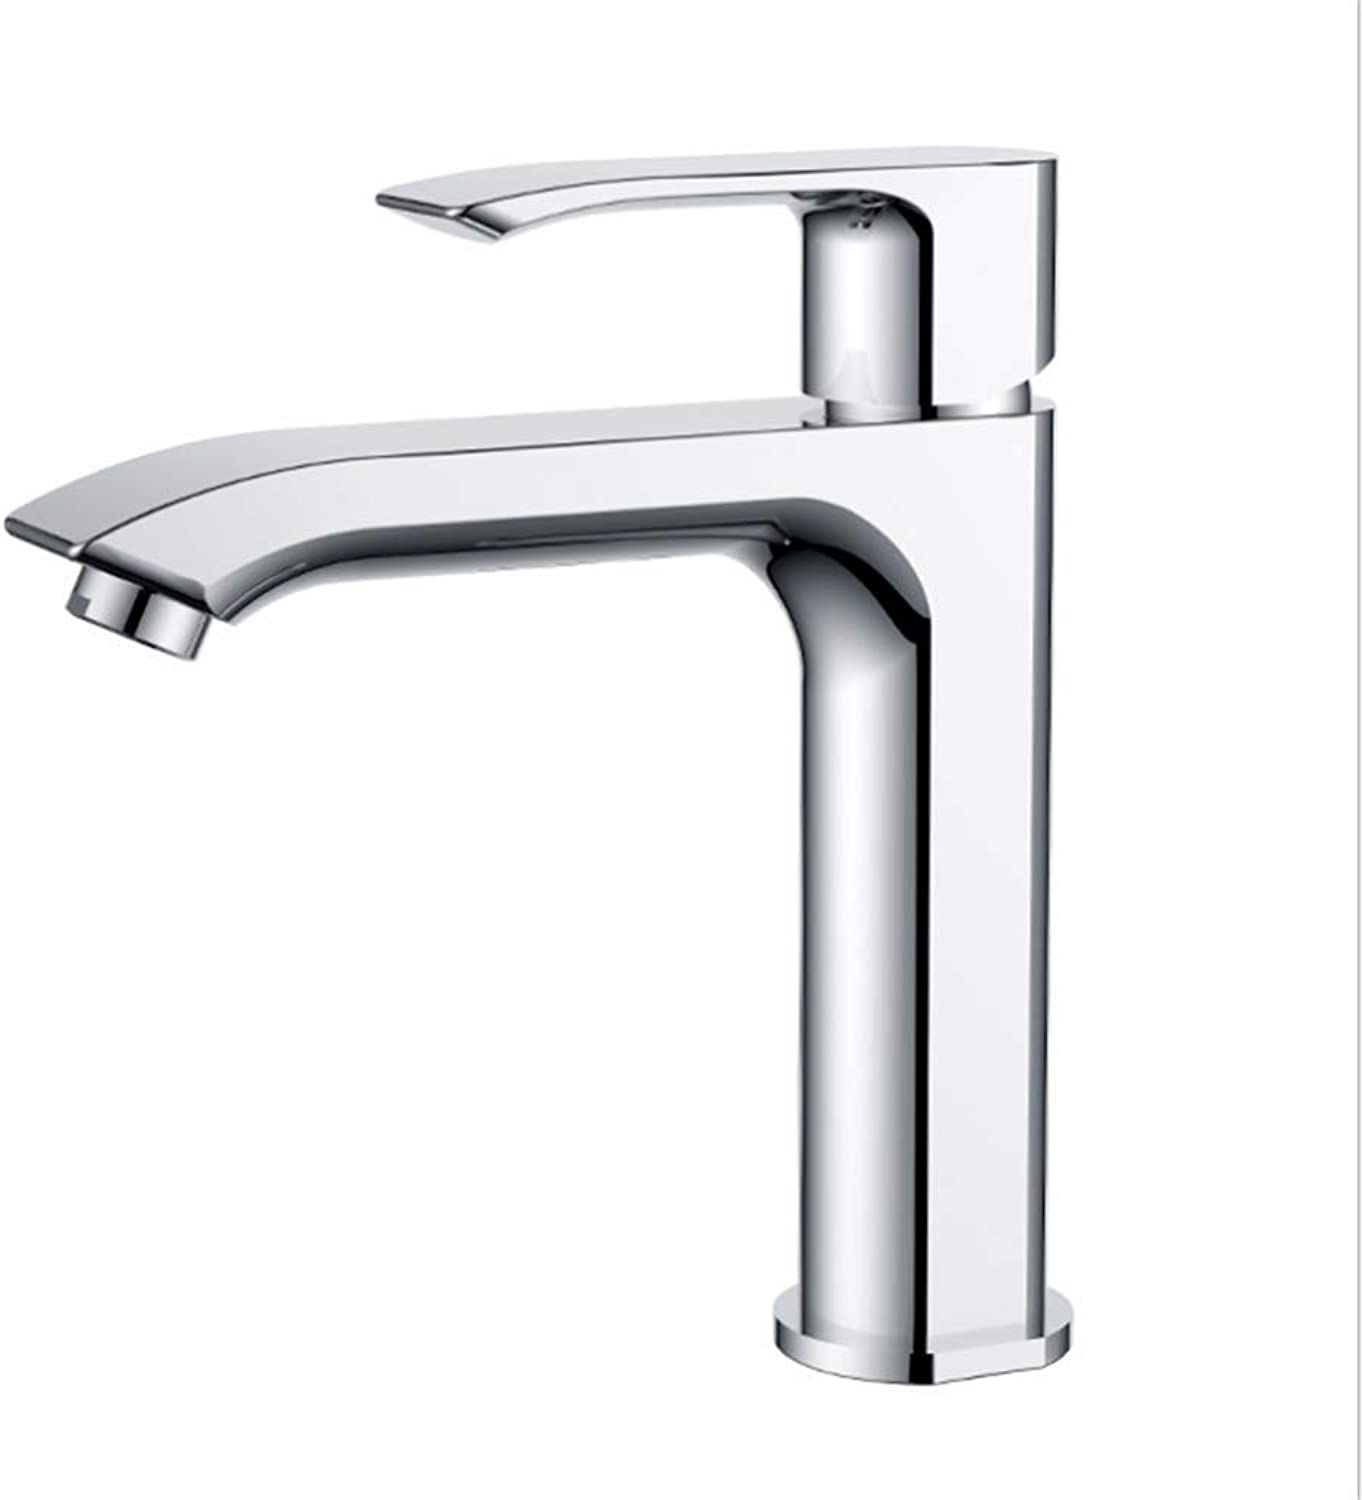 Kitchen Taps Faucet Modern Kitchen Sink Taps Stainless Steelcopper-Faced Basin with Single-Hole Cold and Hot Tap